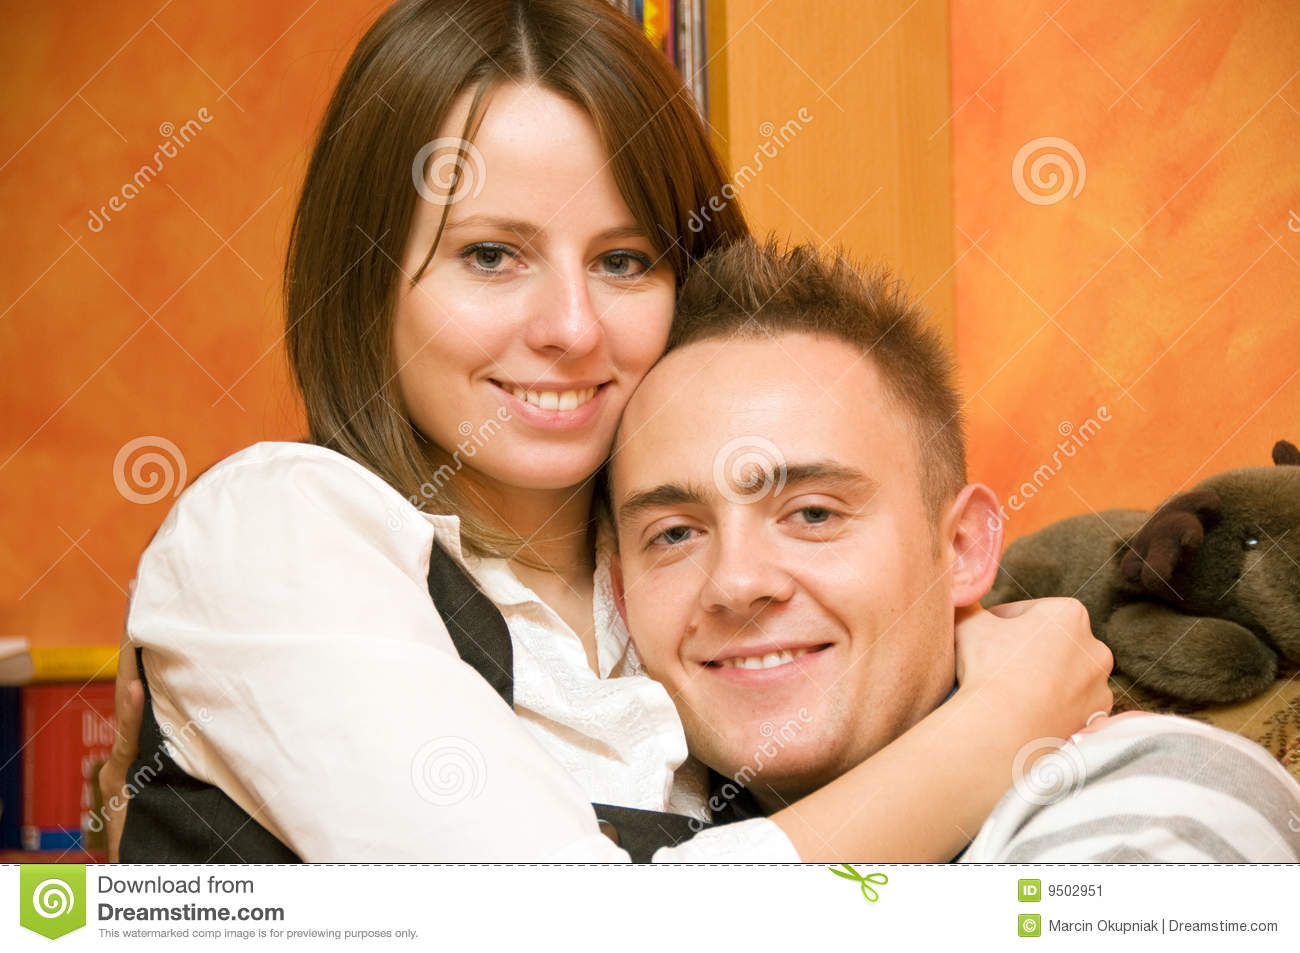 Couple happy